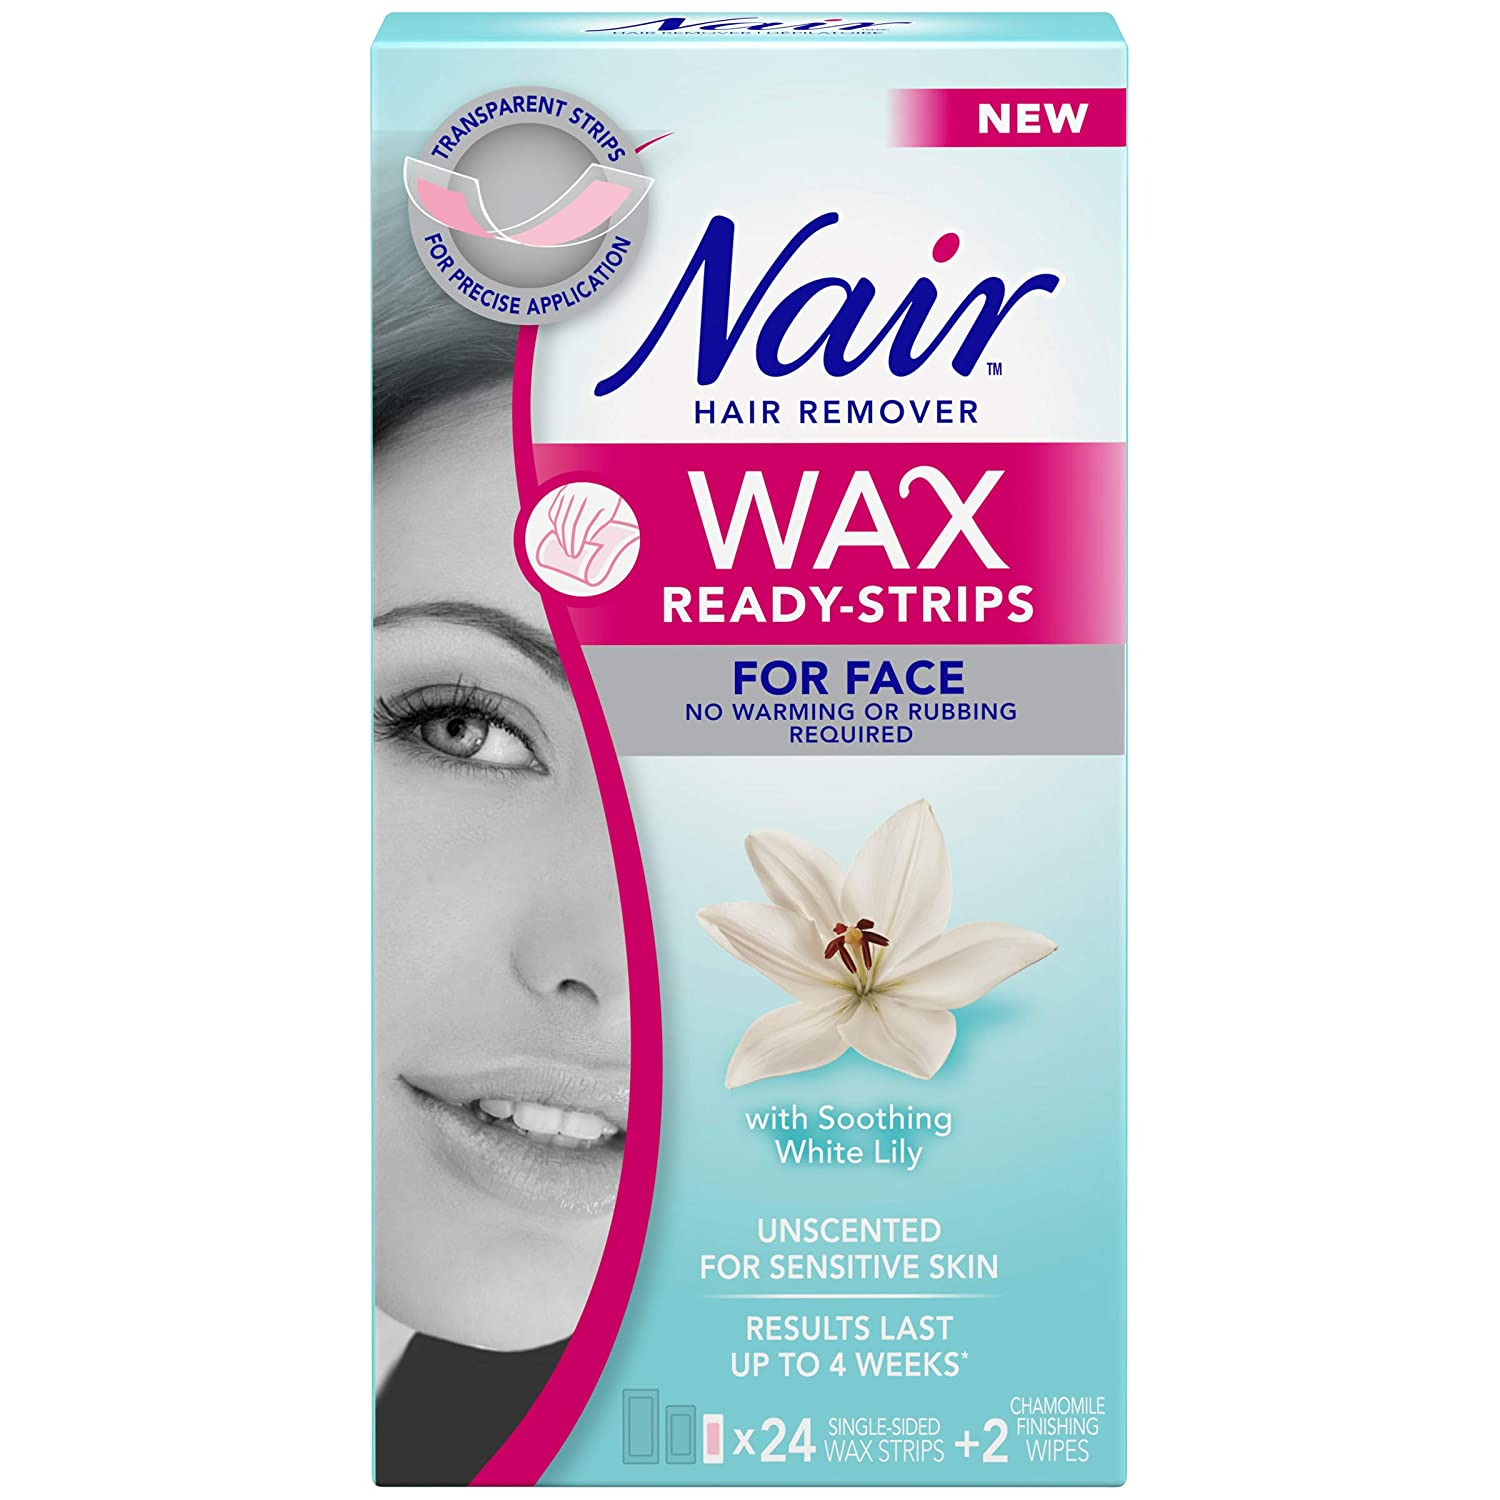 Nair Wax Ready Strips for Face, Unscented for Sensitive Skin with White Lily, 24 Strips + 2 Finishing Wipes Church & Dwight